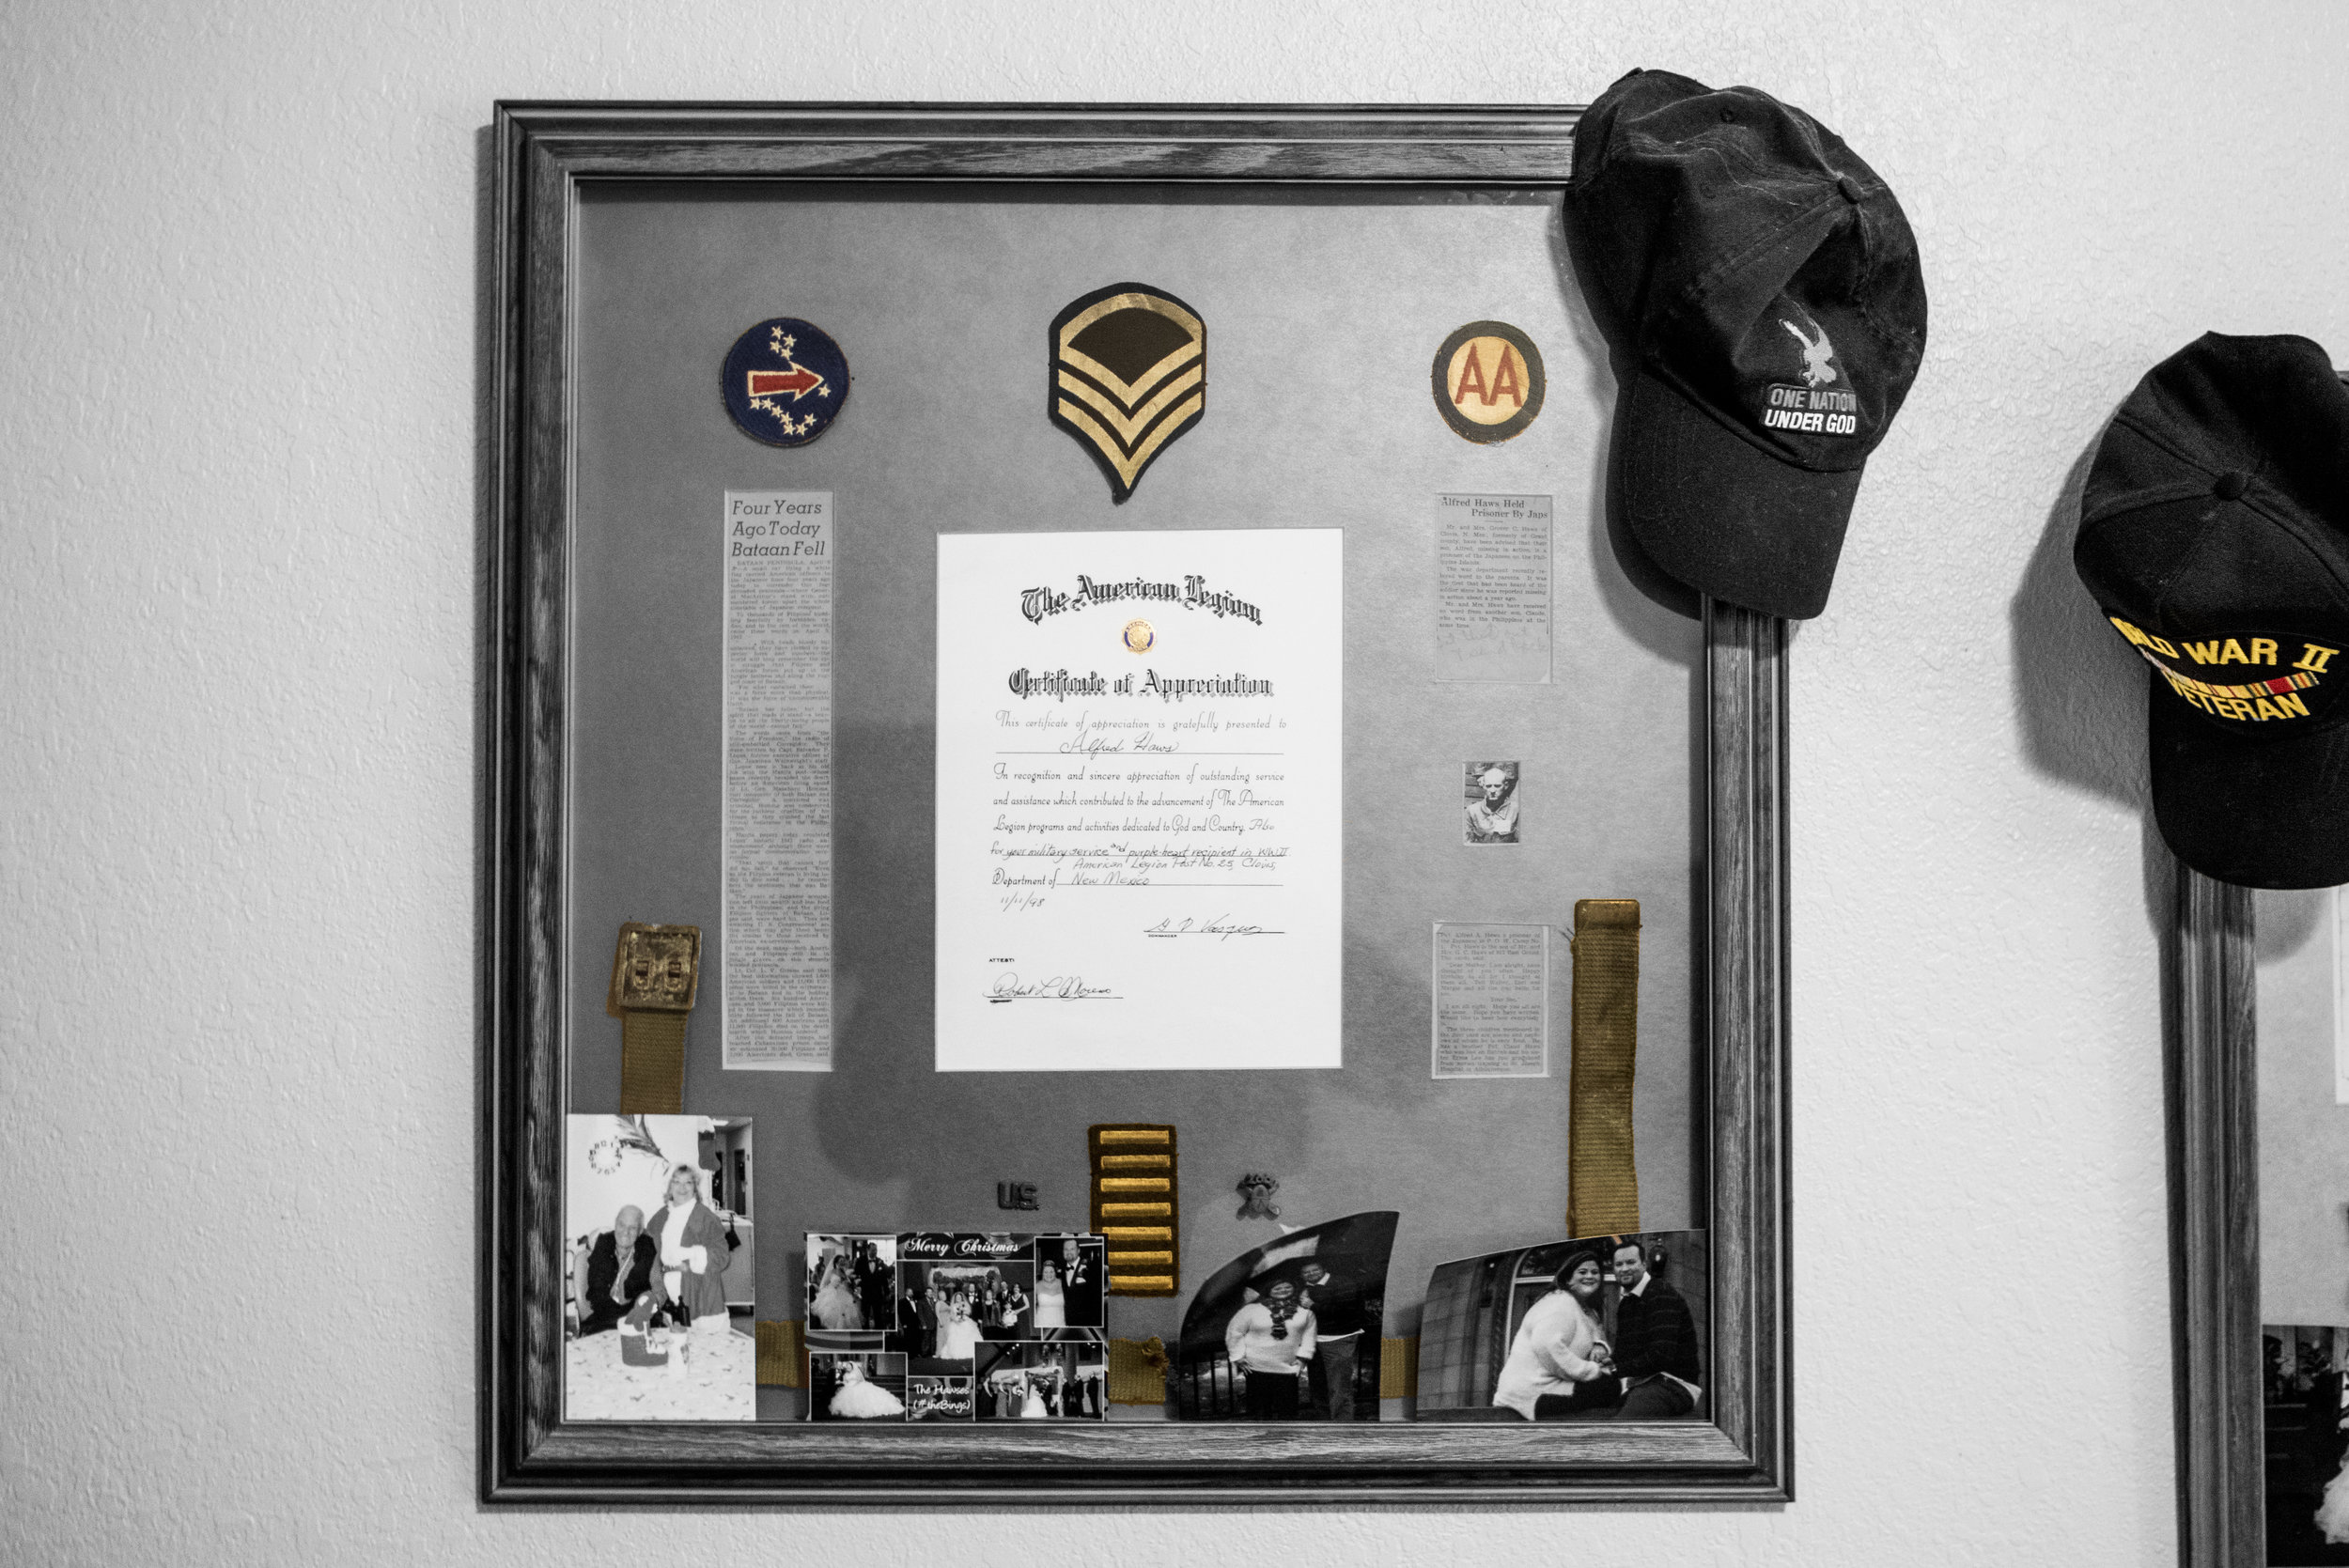 This shadow box contains an article on the Bataan Death March (left), above that the unit patch of the 200th Coastal Artillery, in the middle the Certificate of Appreciation from the American Legion, to the upper right below unit crest is the newspaper clipping informing others of his capture by the Japanese, and below that is a letter from Alfred to his parents from the Japanese camp.  The belt he used as a tourniquet to stop the bleeding from his right arm after an Allied Forces bomb hit the plant he was working in.